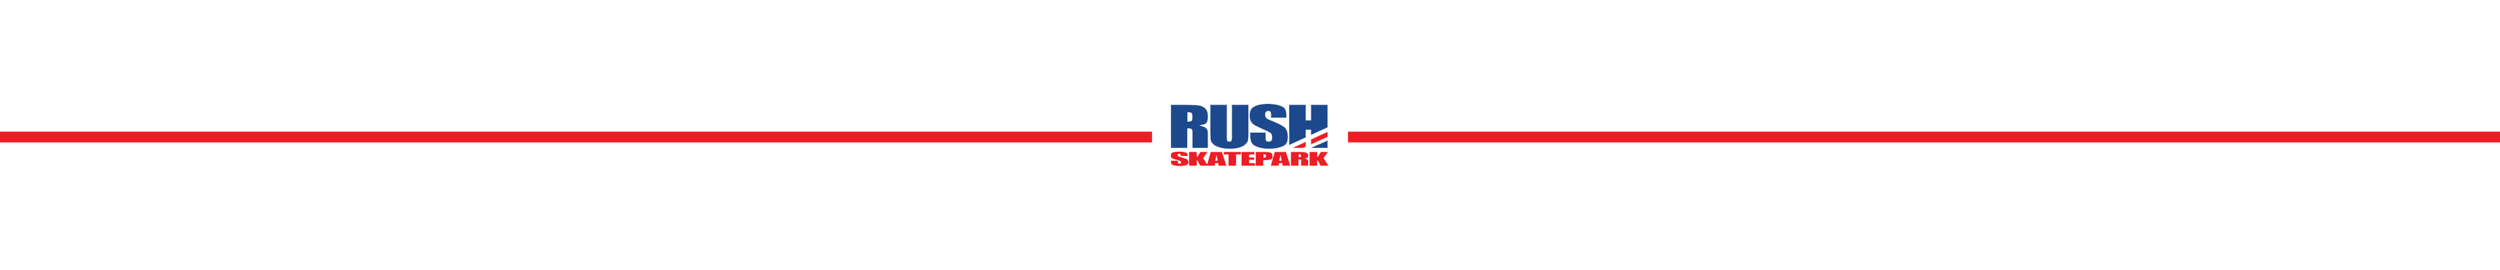 Rush Web Spacer.png